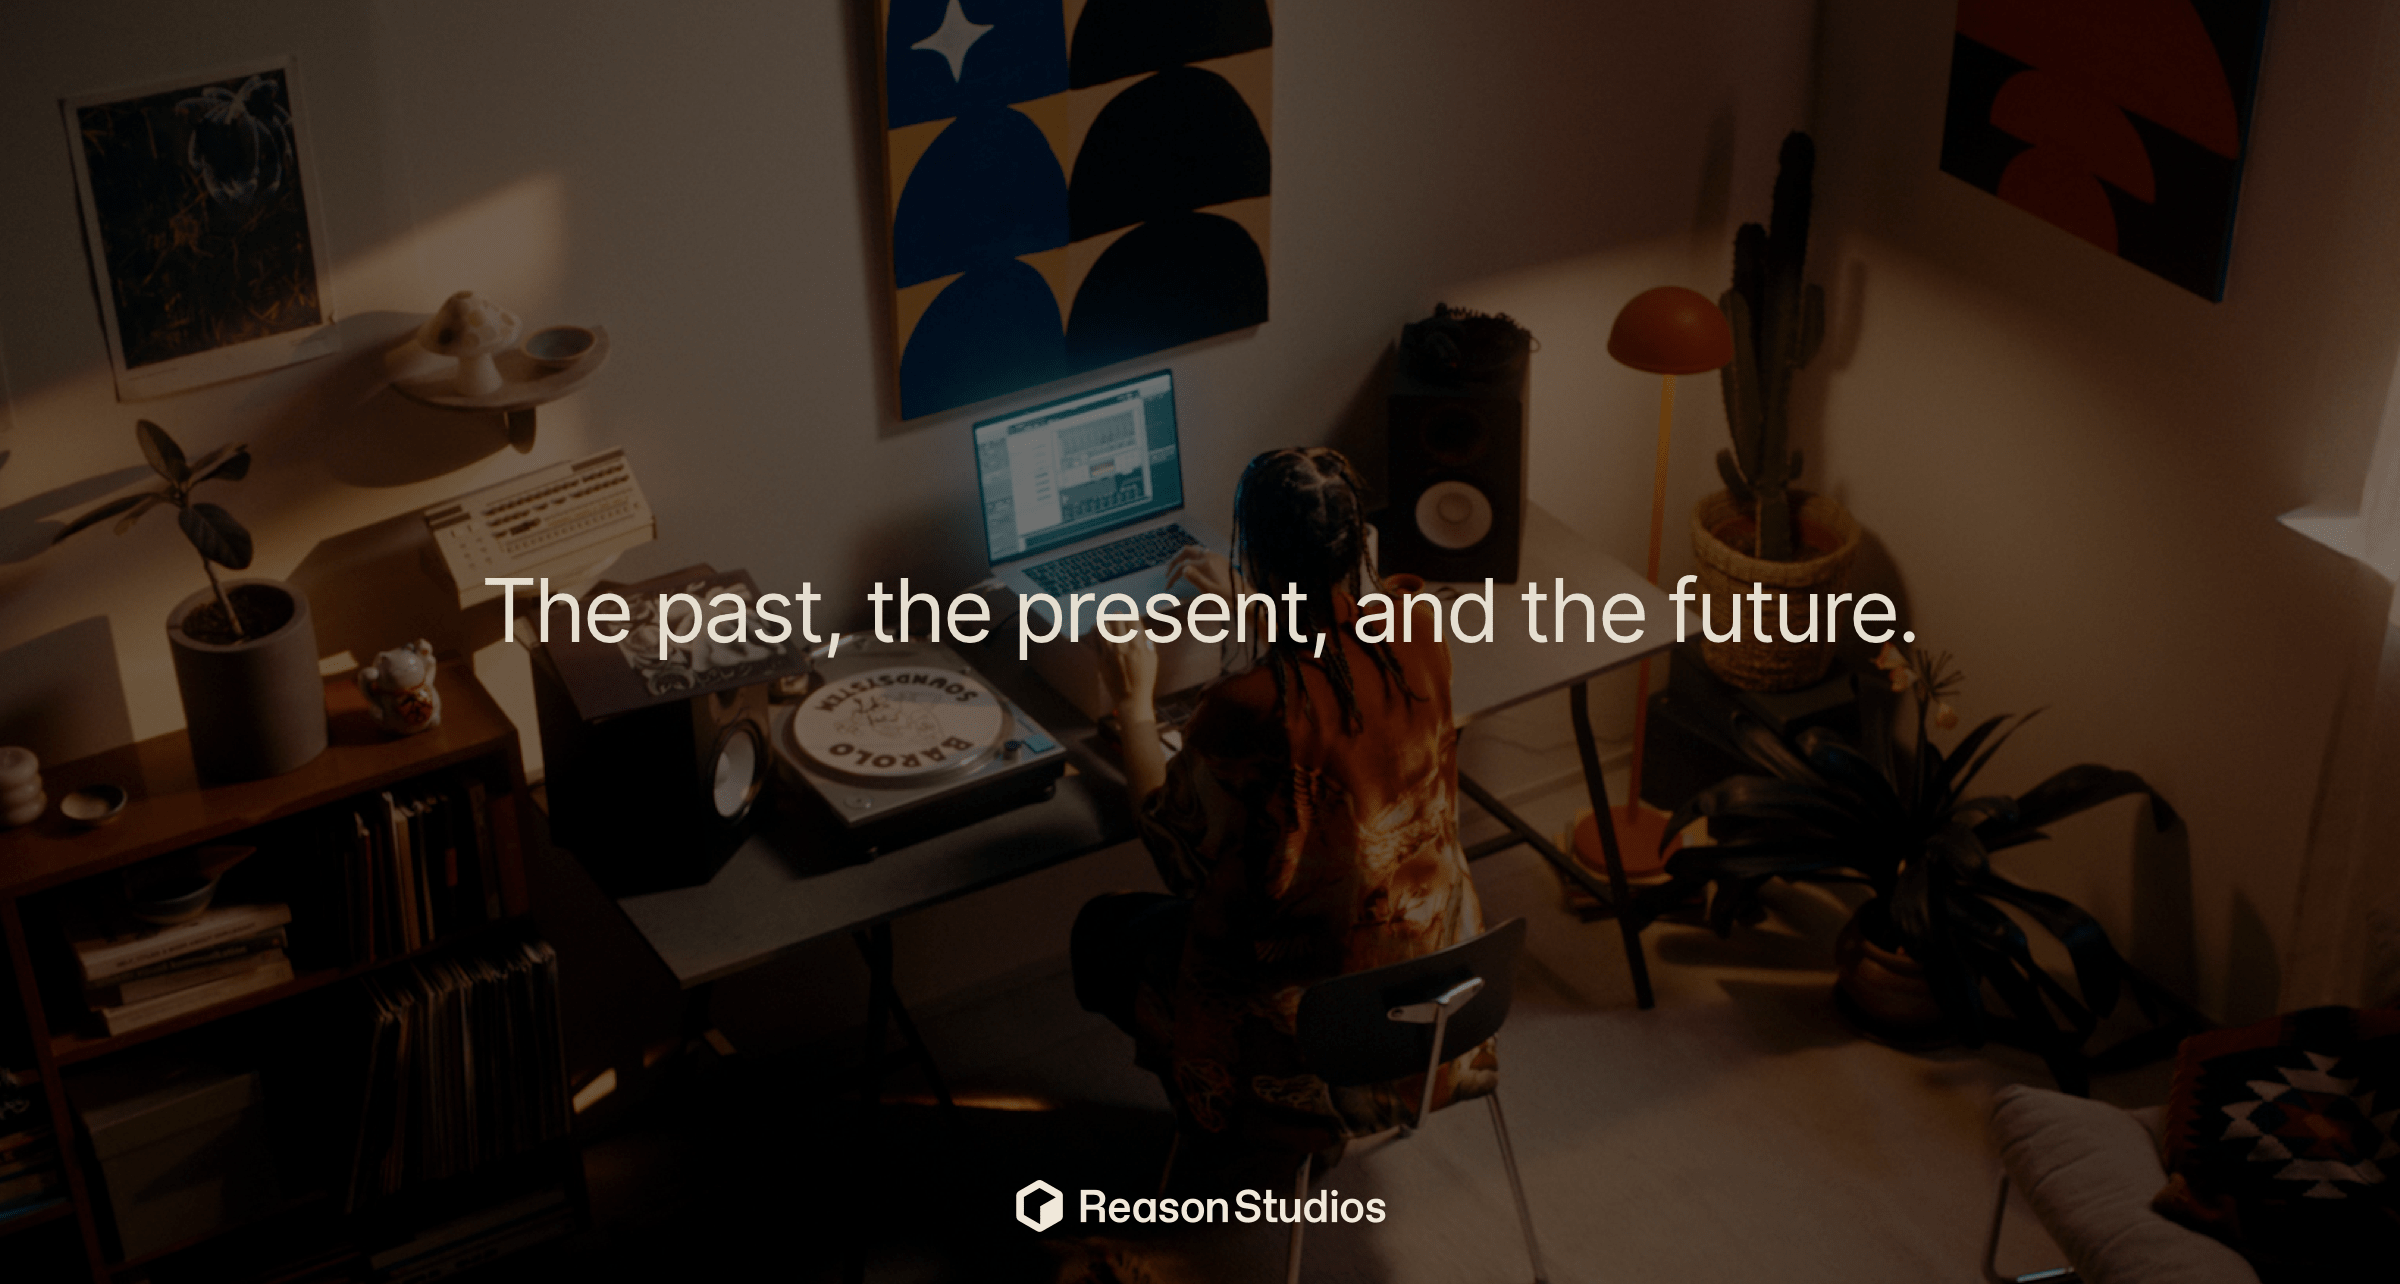 Getting lost in the fun of serious music making – a roadmap for Reason